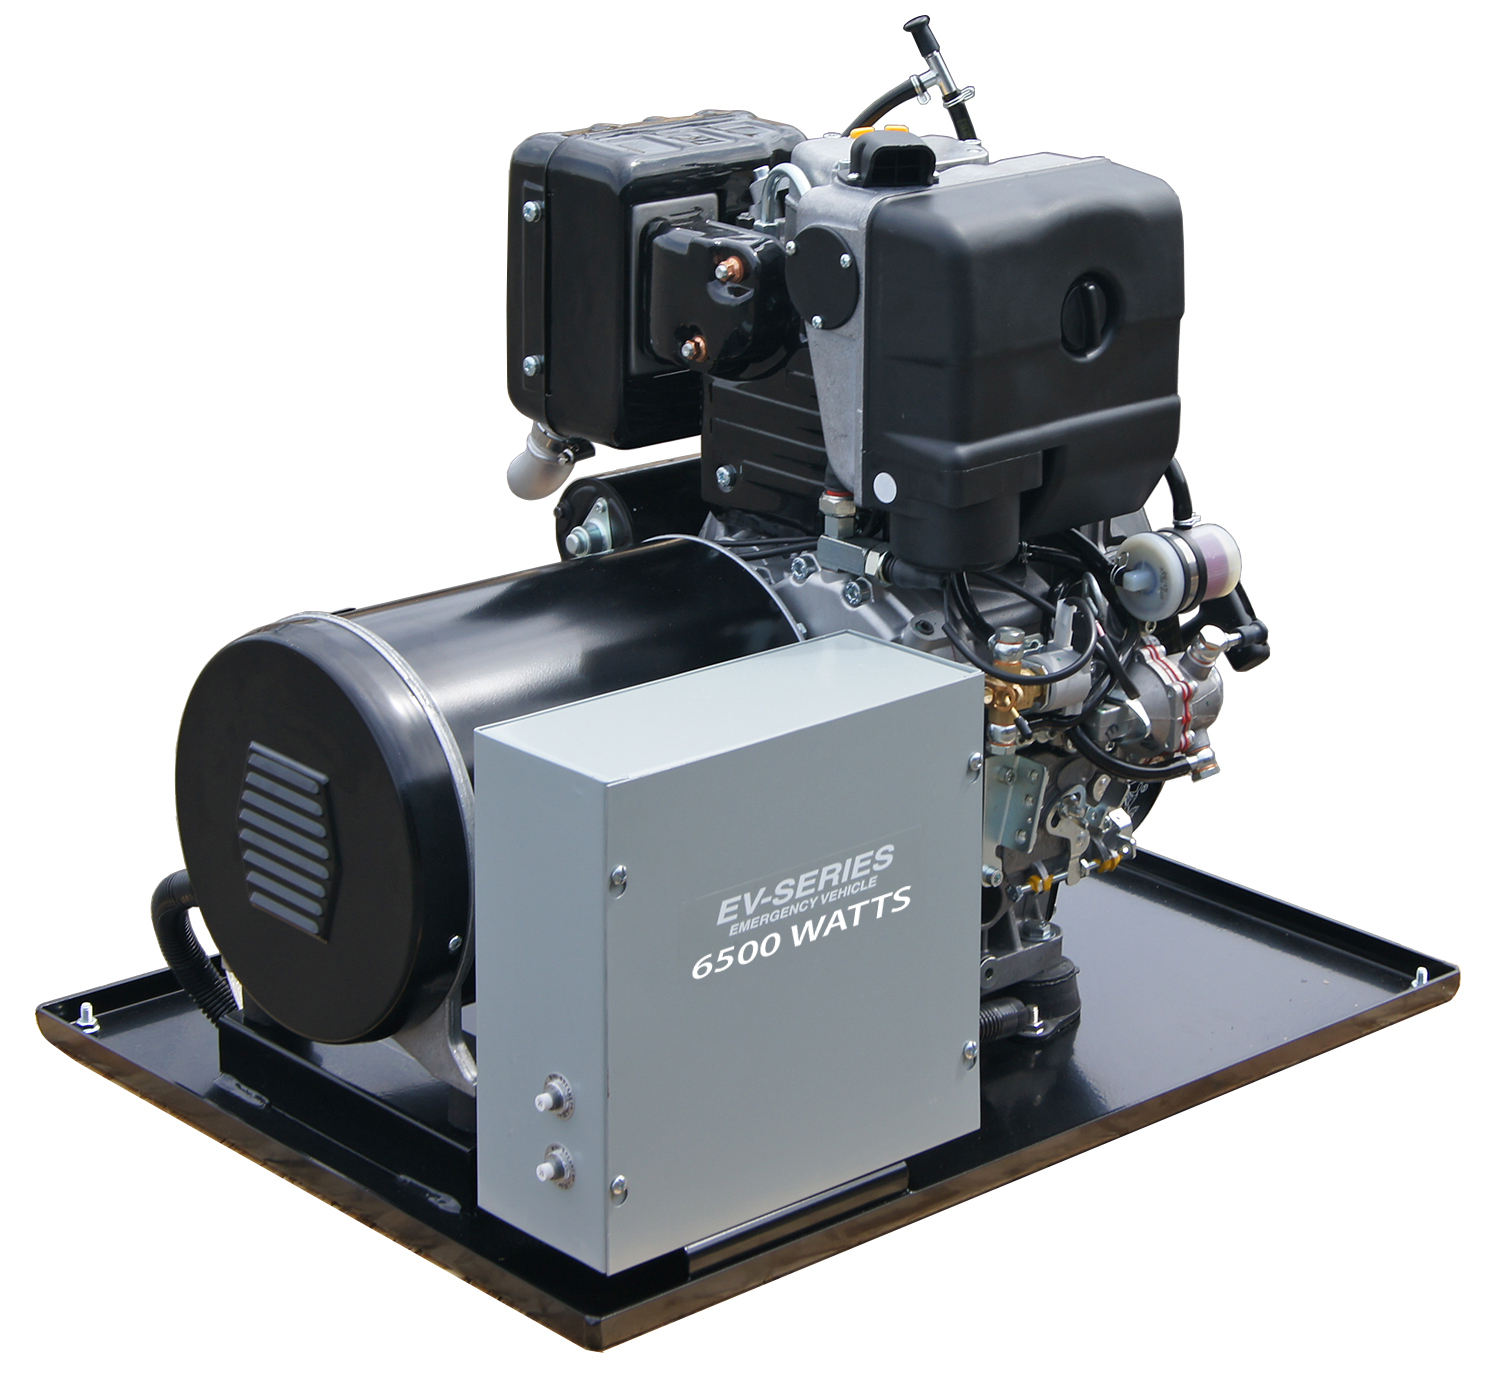 Gillette Vehicle Mount Diesel Generator EVTD 65EK 6 5 kW 10 HP